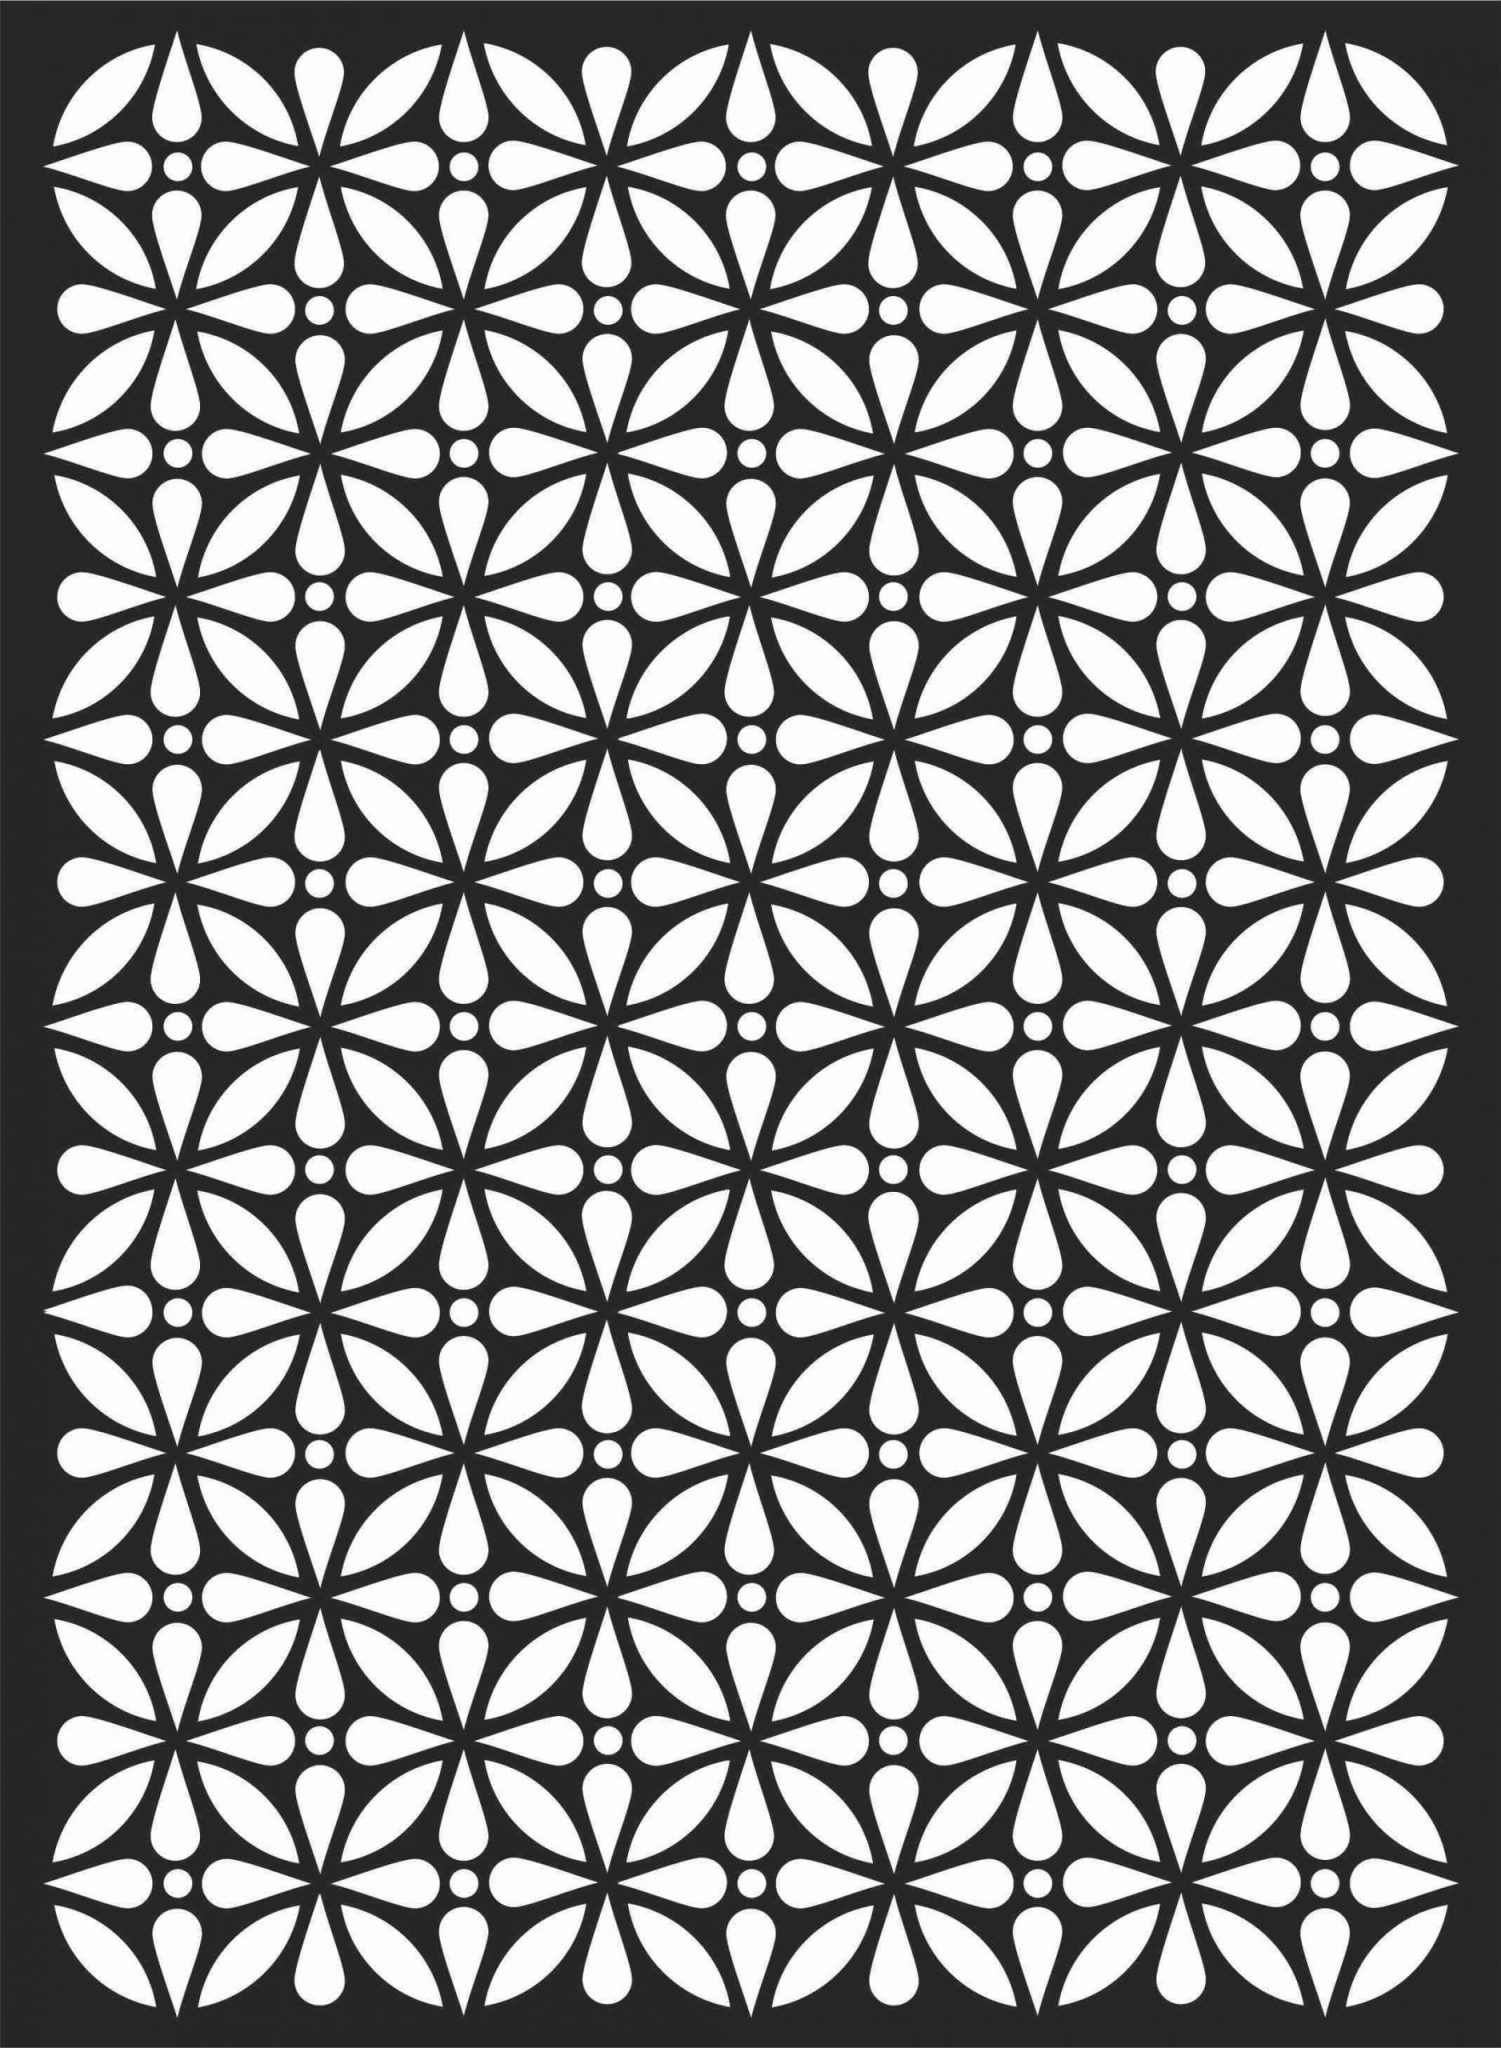 Floral Screen Patterns Design 62 Free DXF File